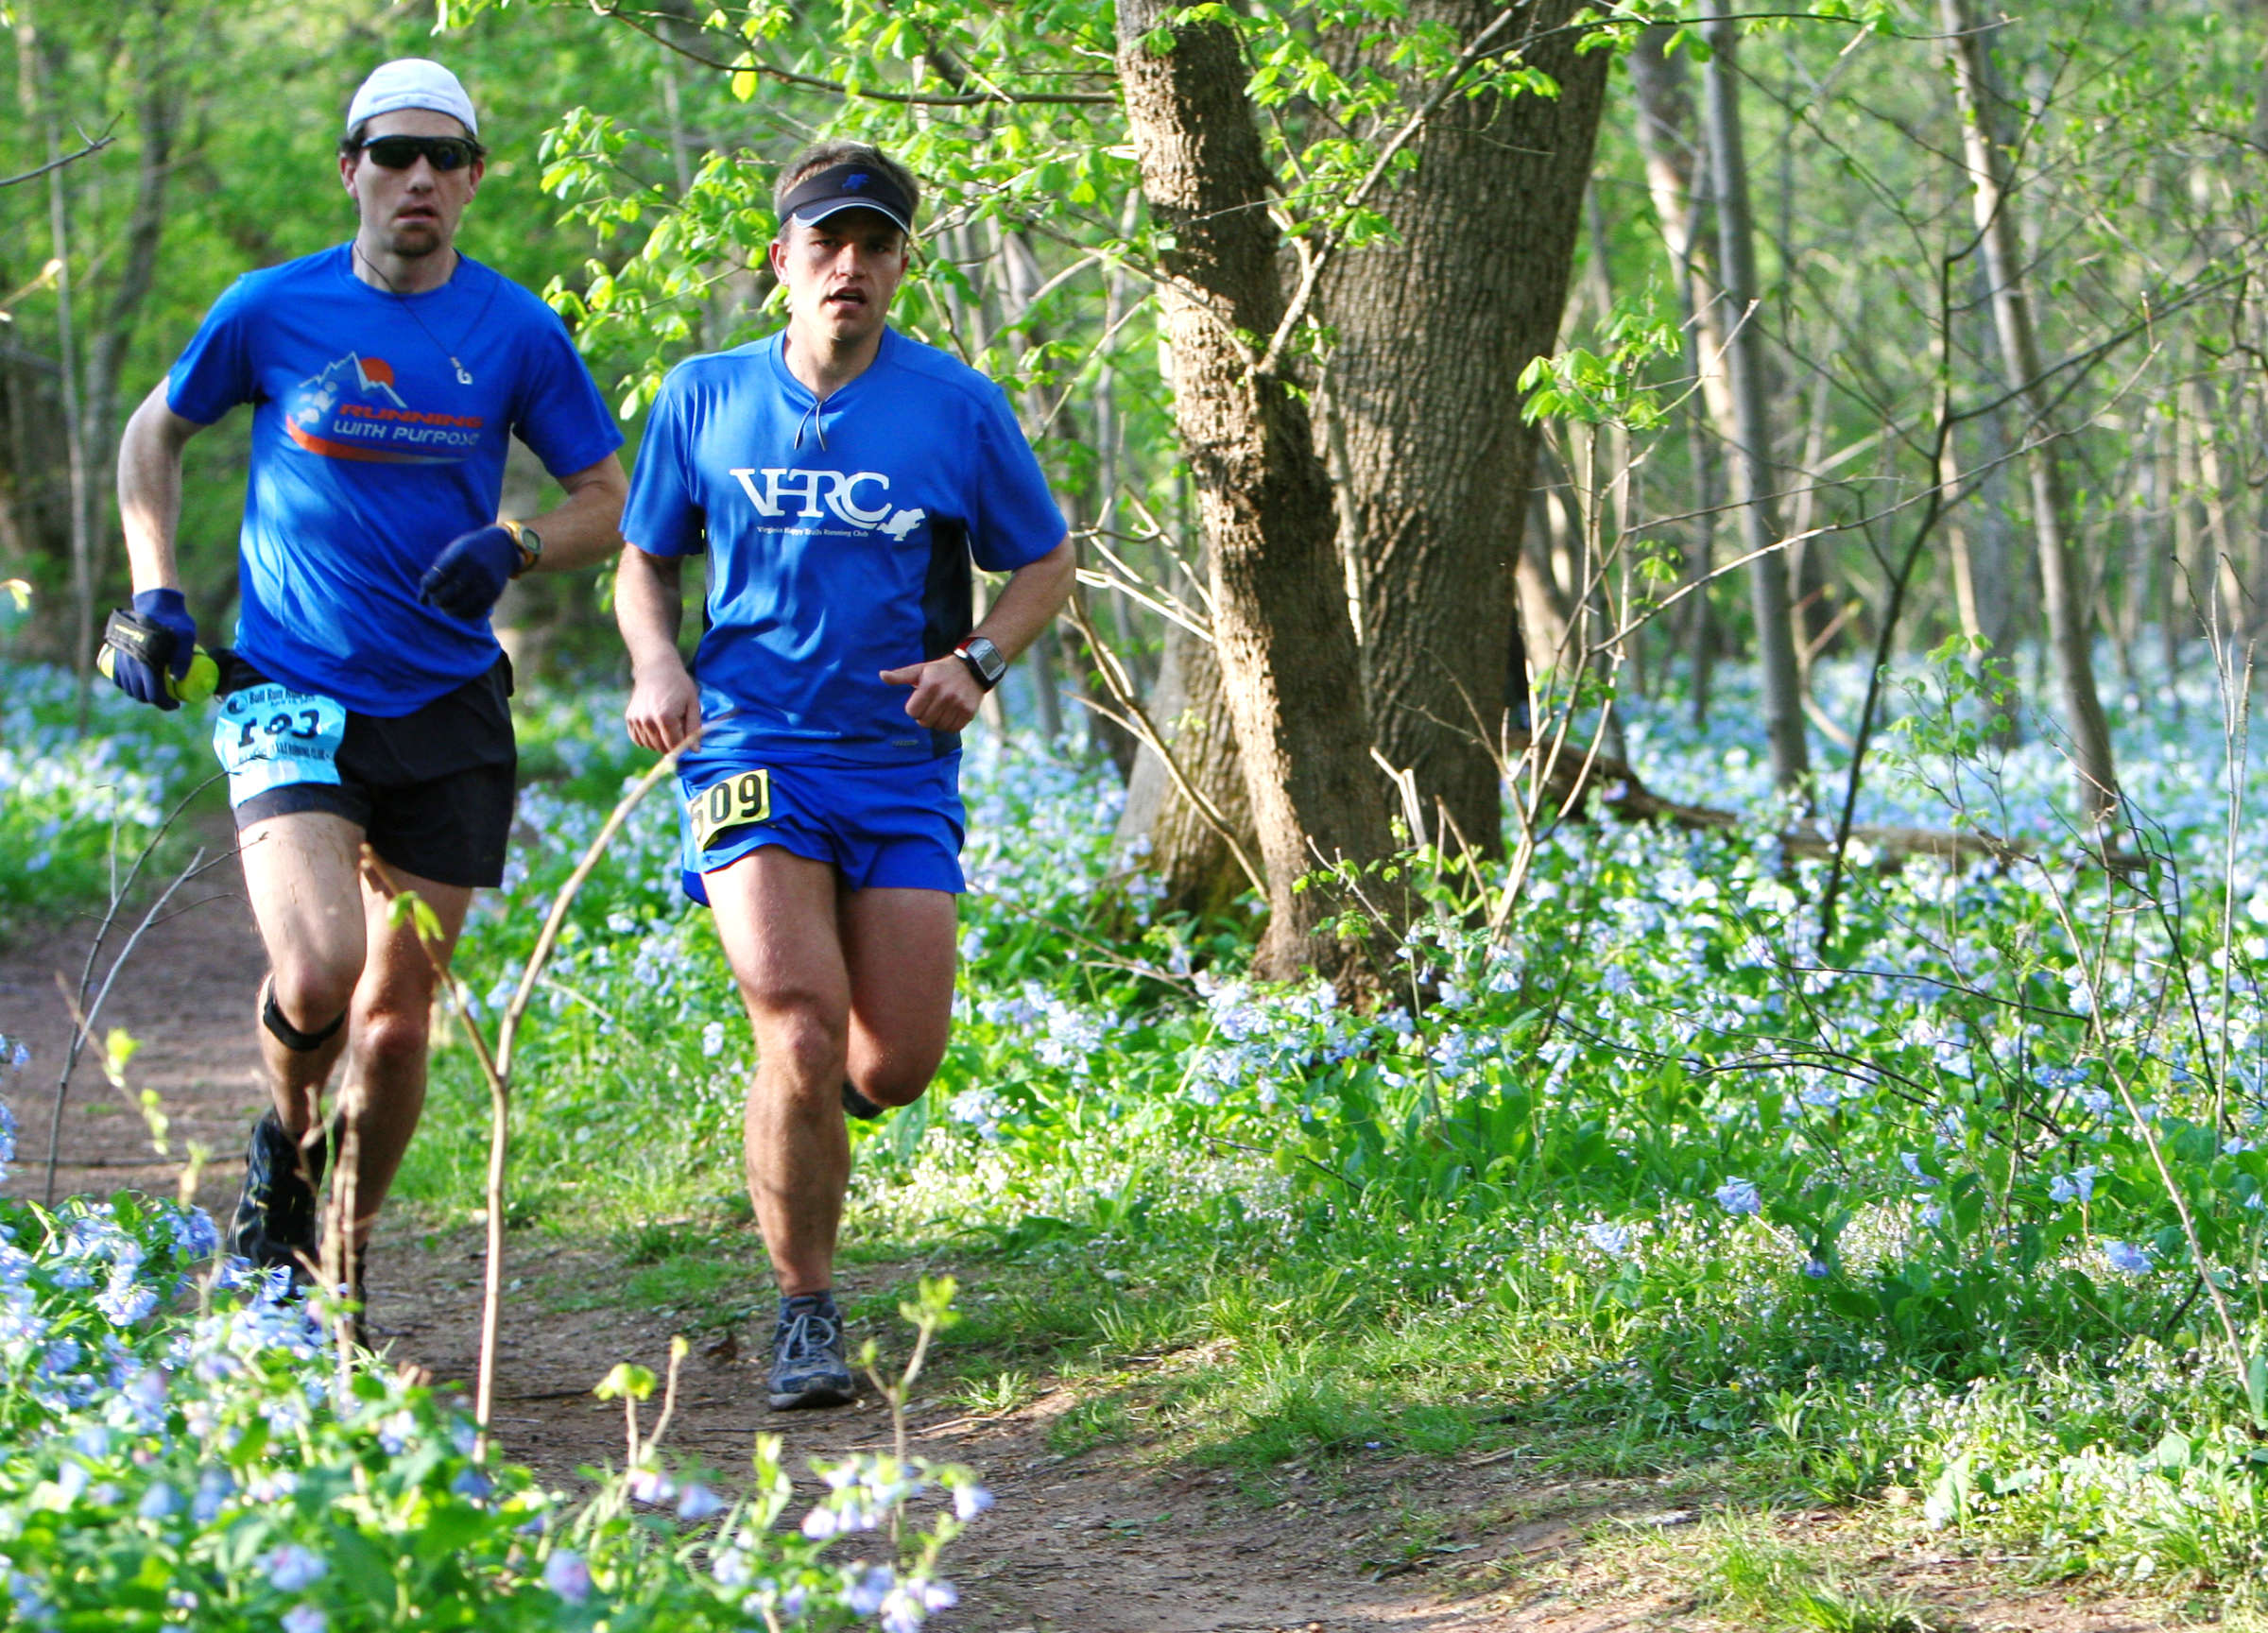 Brad Hinton and Keith Knipling cruise through the bluebells during the early miles of the 2010 BRR.